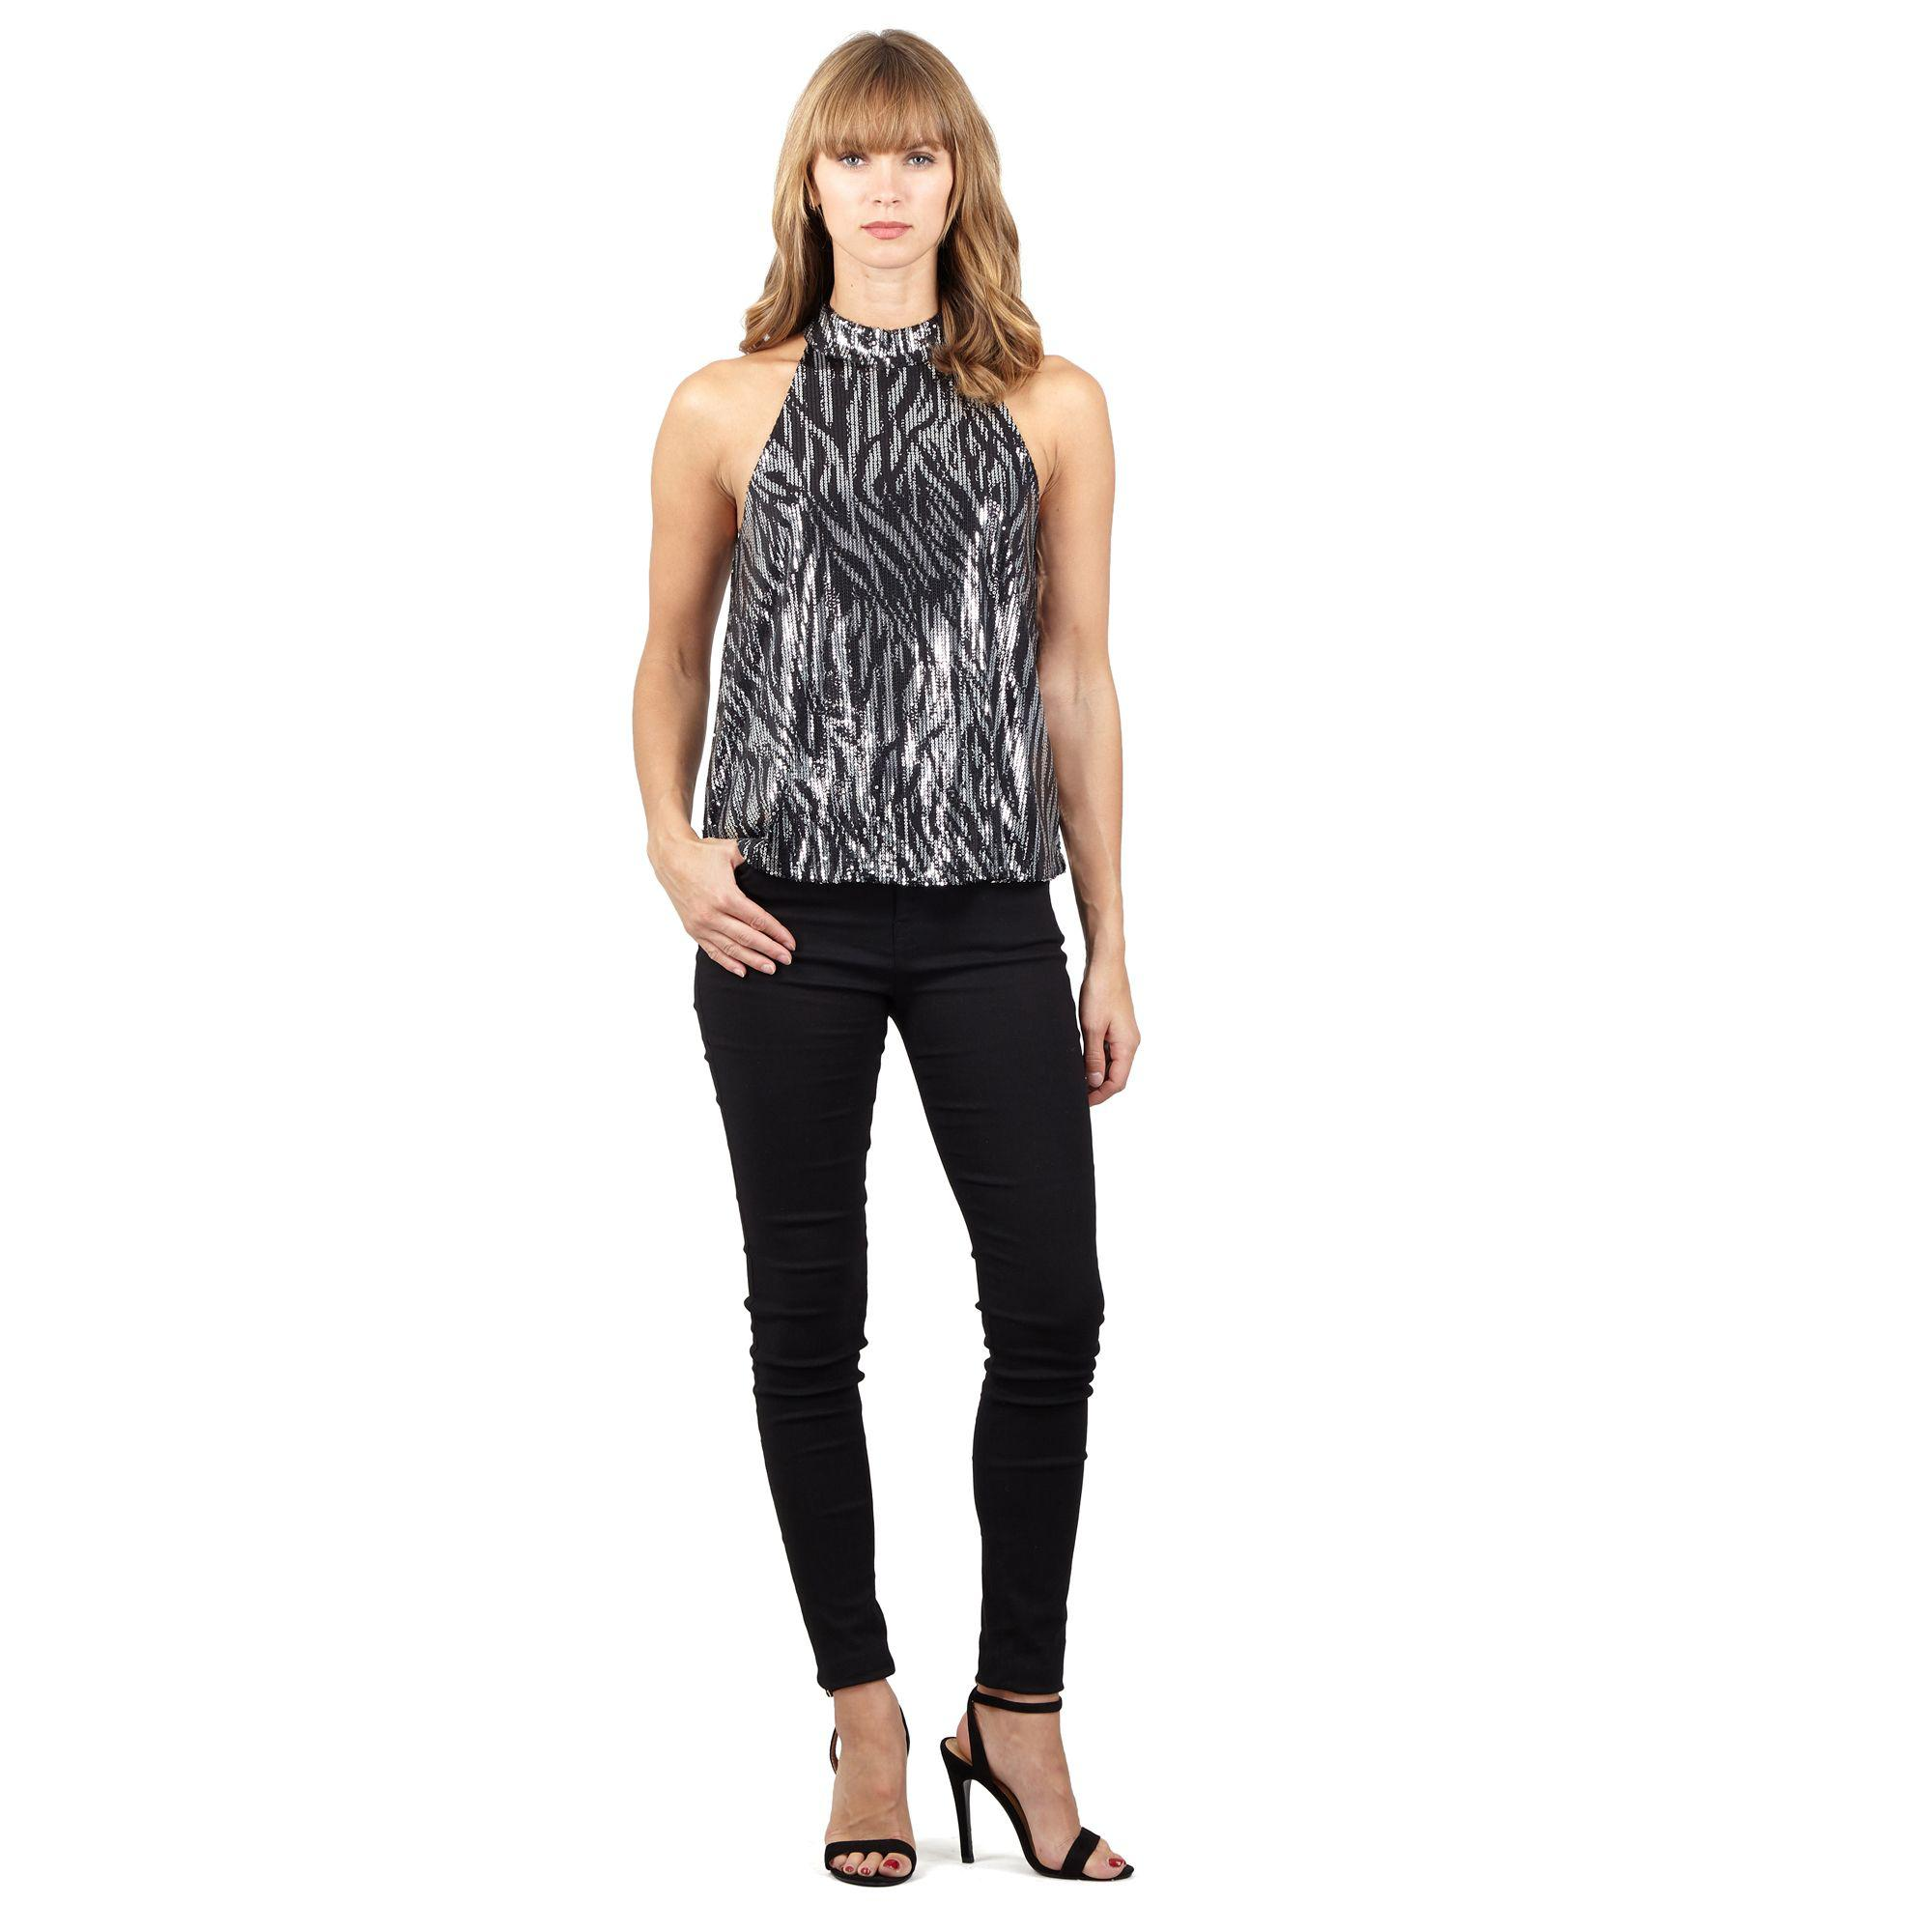 27e496aff36a5 Izabel London - Black Printed High Neck Top - Lyst. View fullscreen